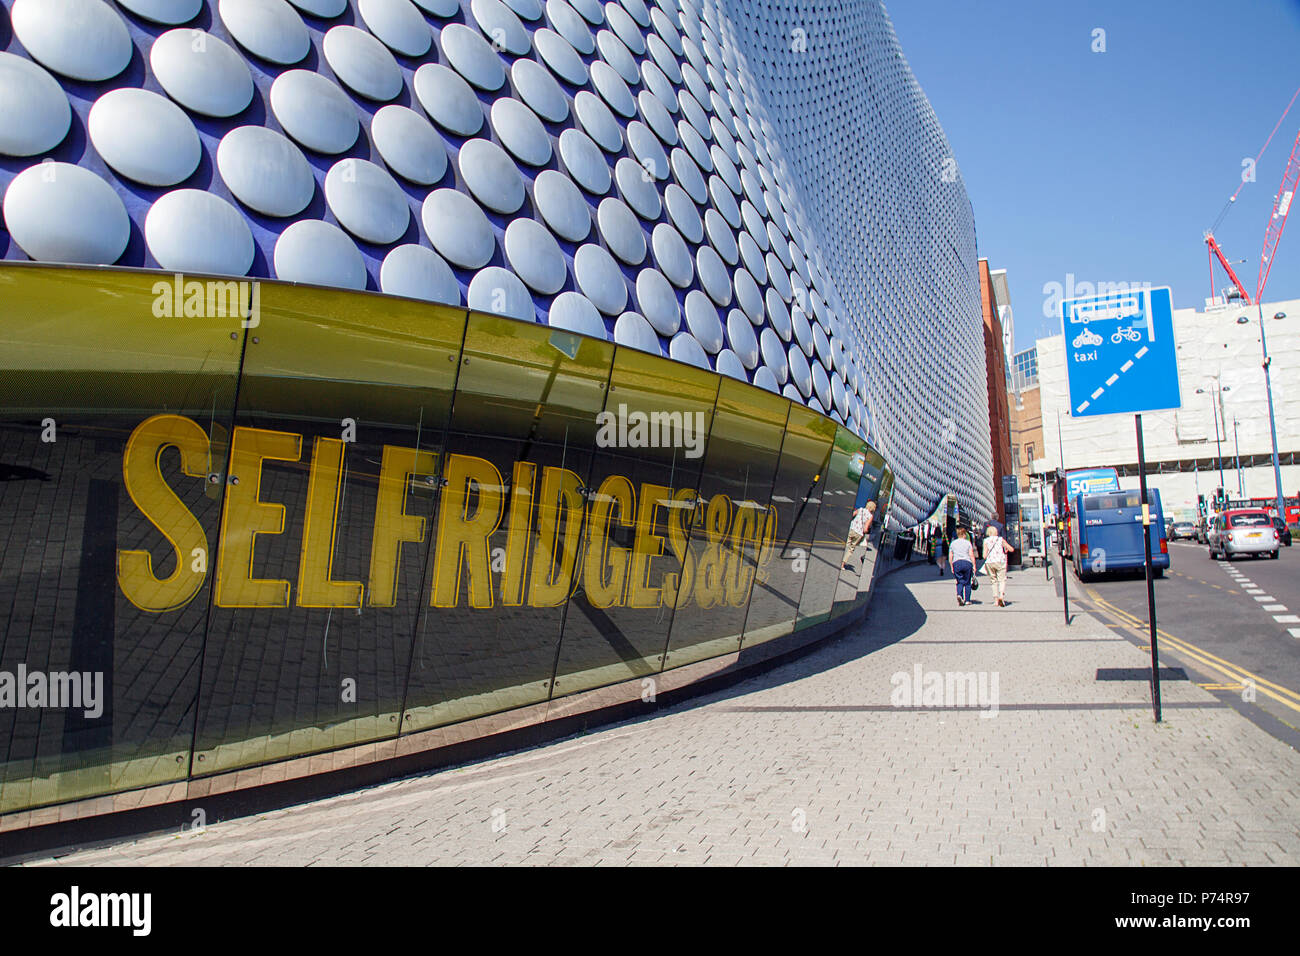 Birmingham, UK : 29 Juin 2018 : grand magasin Selfridges à Park Street - partie de la centre commercial Bullring. Les piétons marcher vers l'arrêt de bus Photo Stock